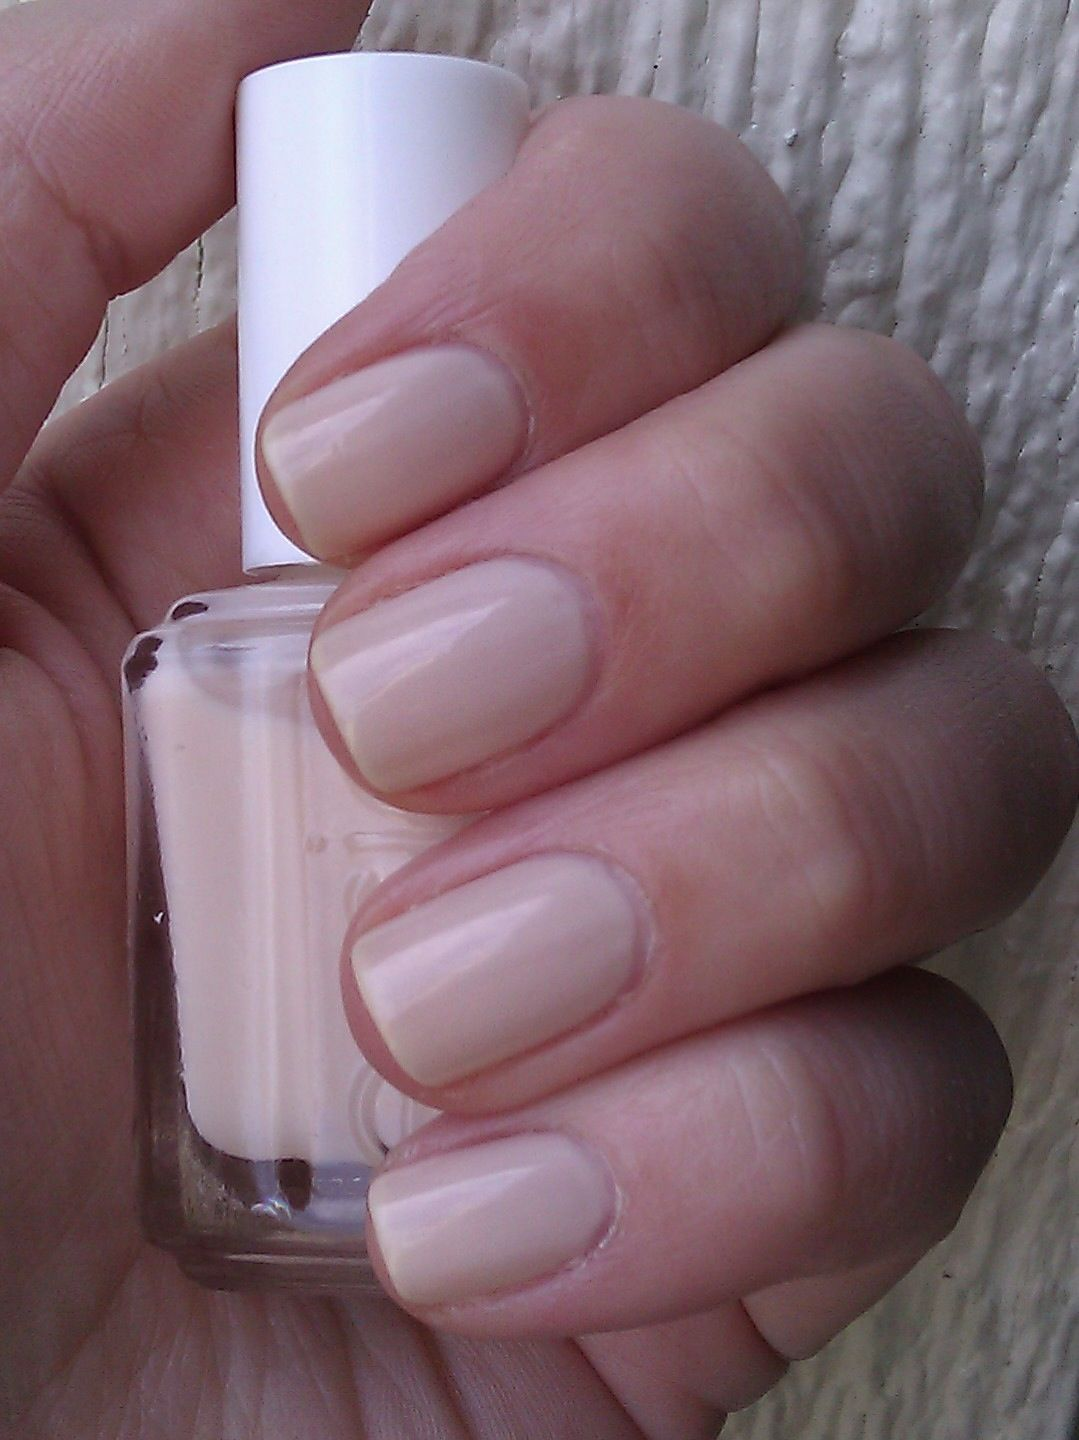 Essie Limo-scene - A Beautiful Balance Between Creamy & Sheer, Pink ...